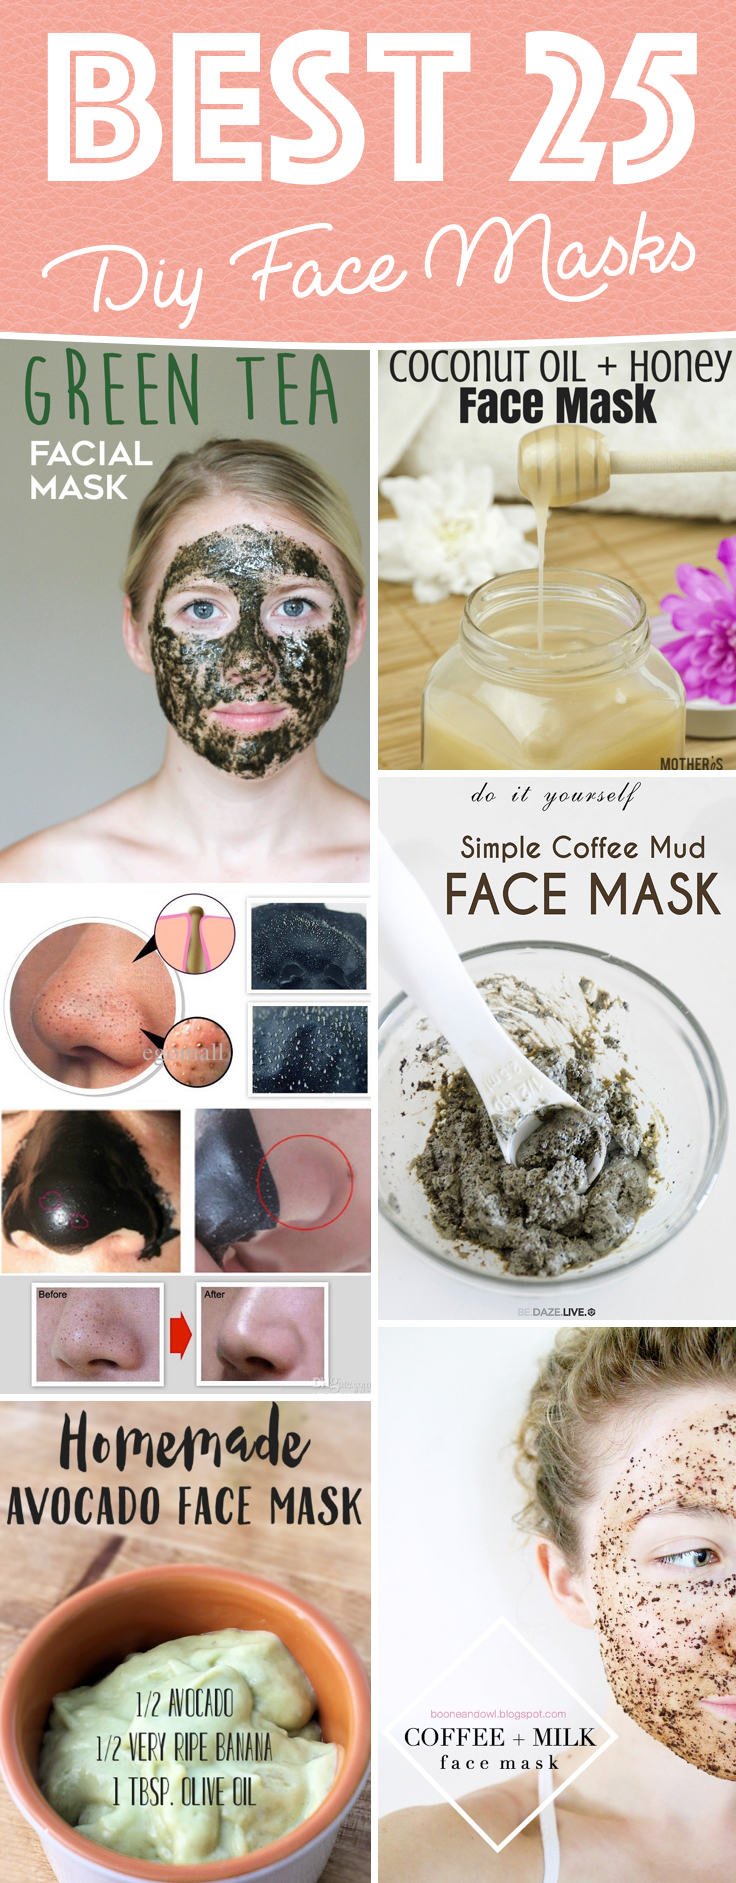 25 diy face masks casting a magical spell on your skin best diy face masks solutioingenieria Images